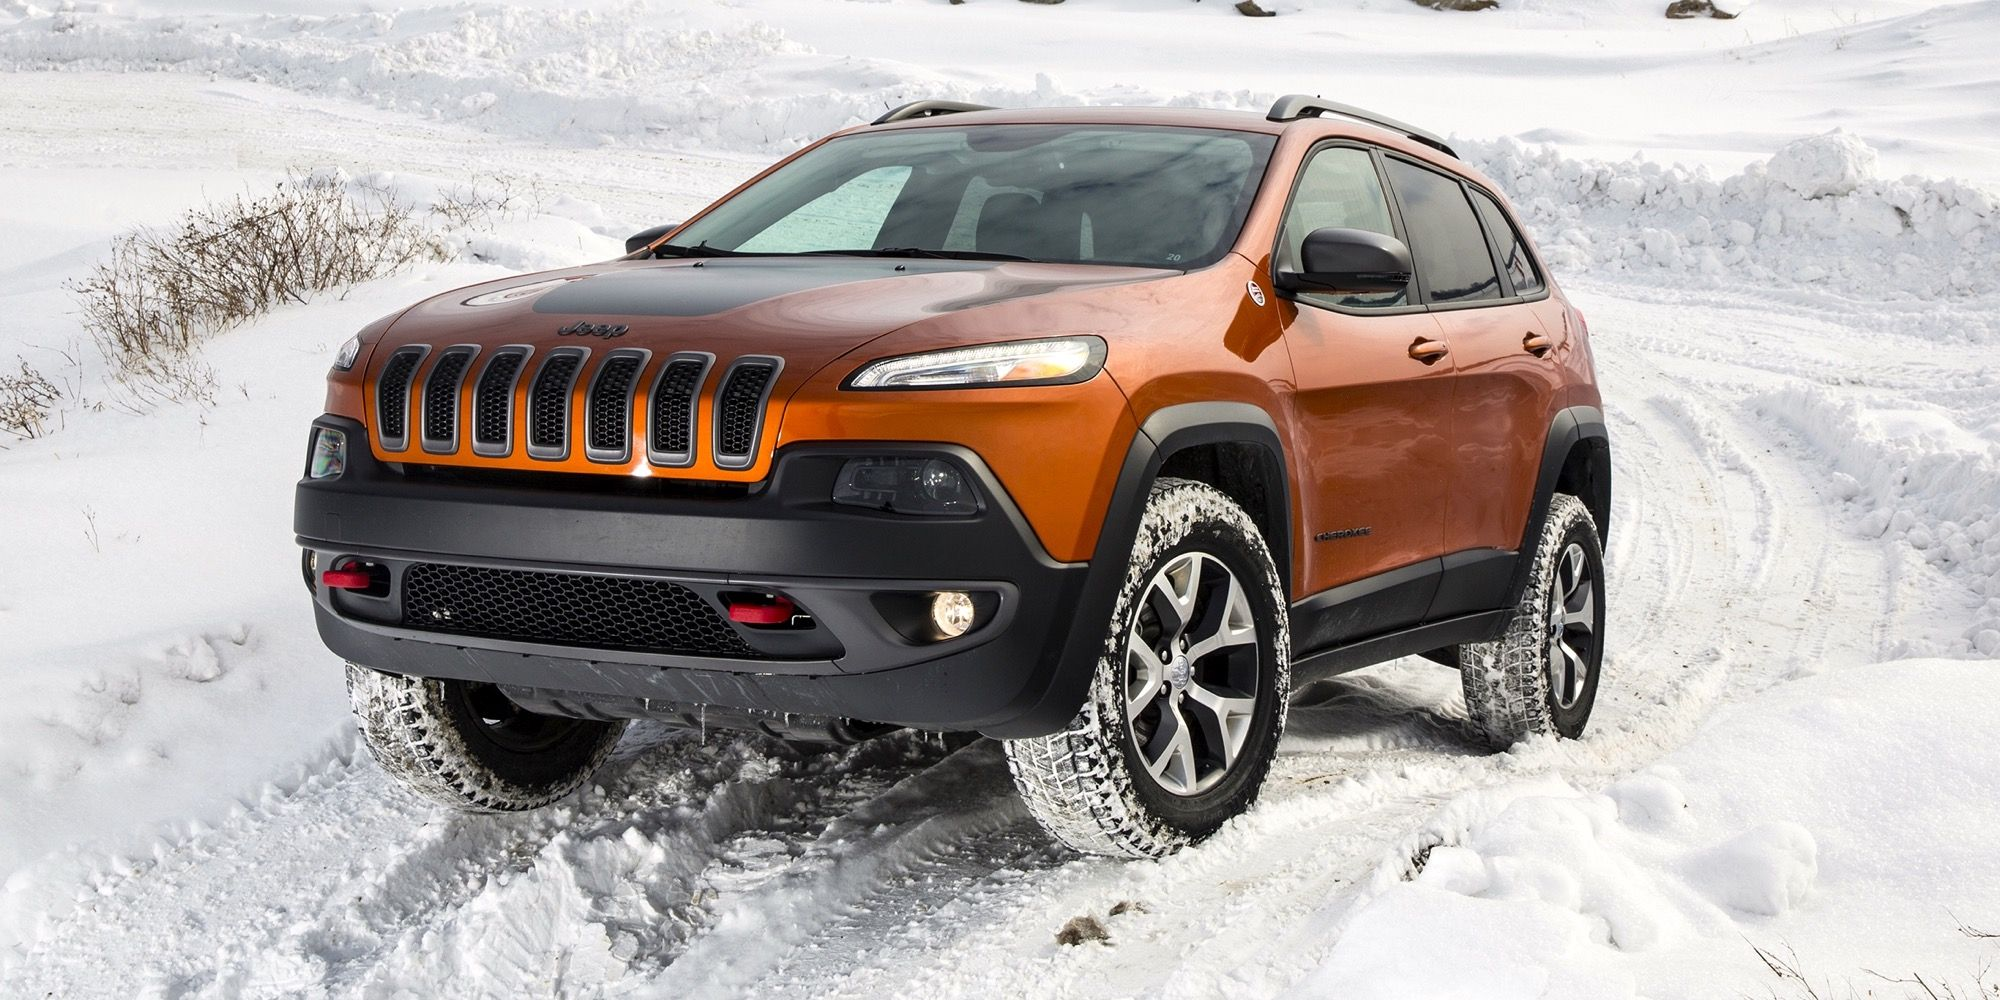 Off Road In The Snow With Jeep Jeep Cherokee Jeep Trailhawk Jeep Cherokee Trailhawk